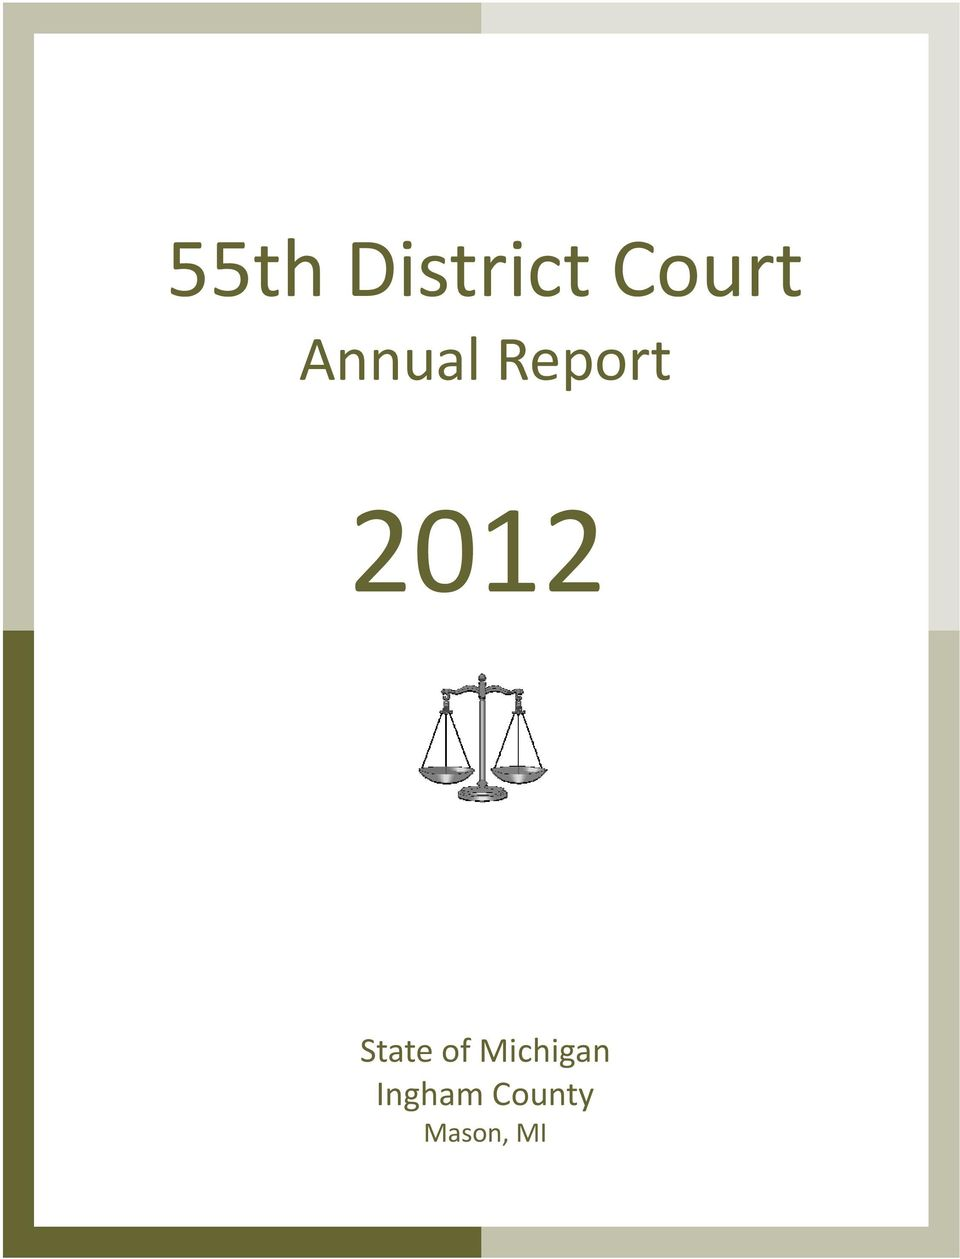 55th District Court Annual Report - PDF